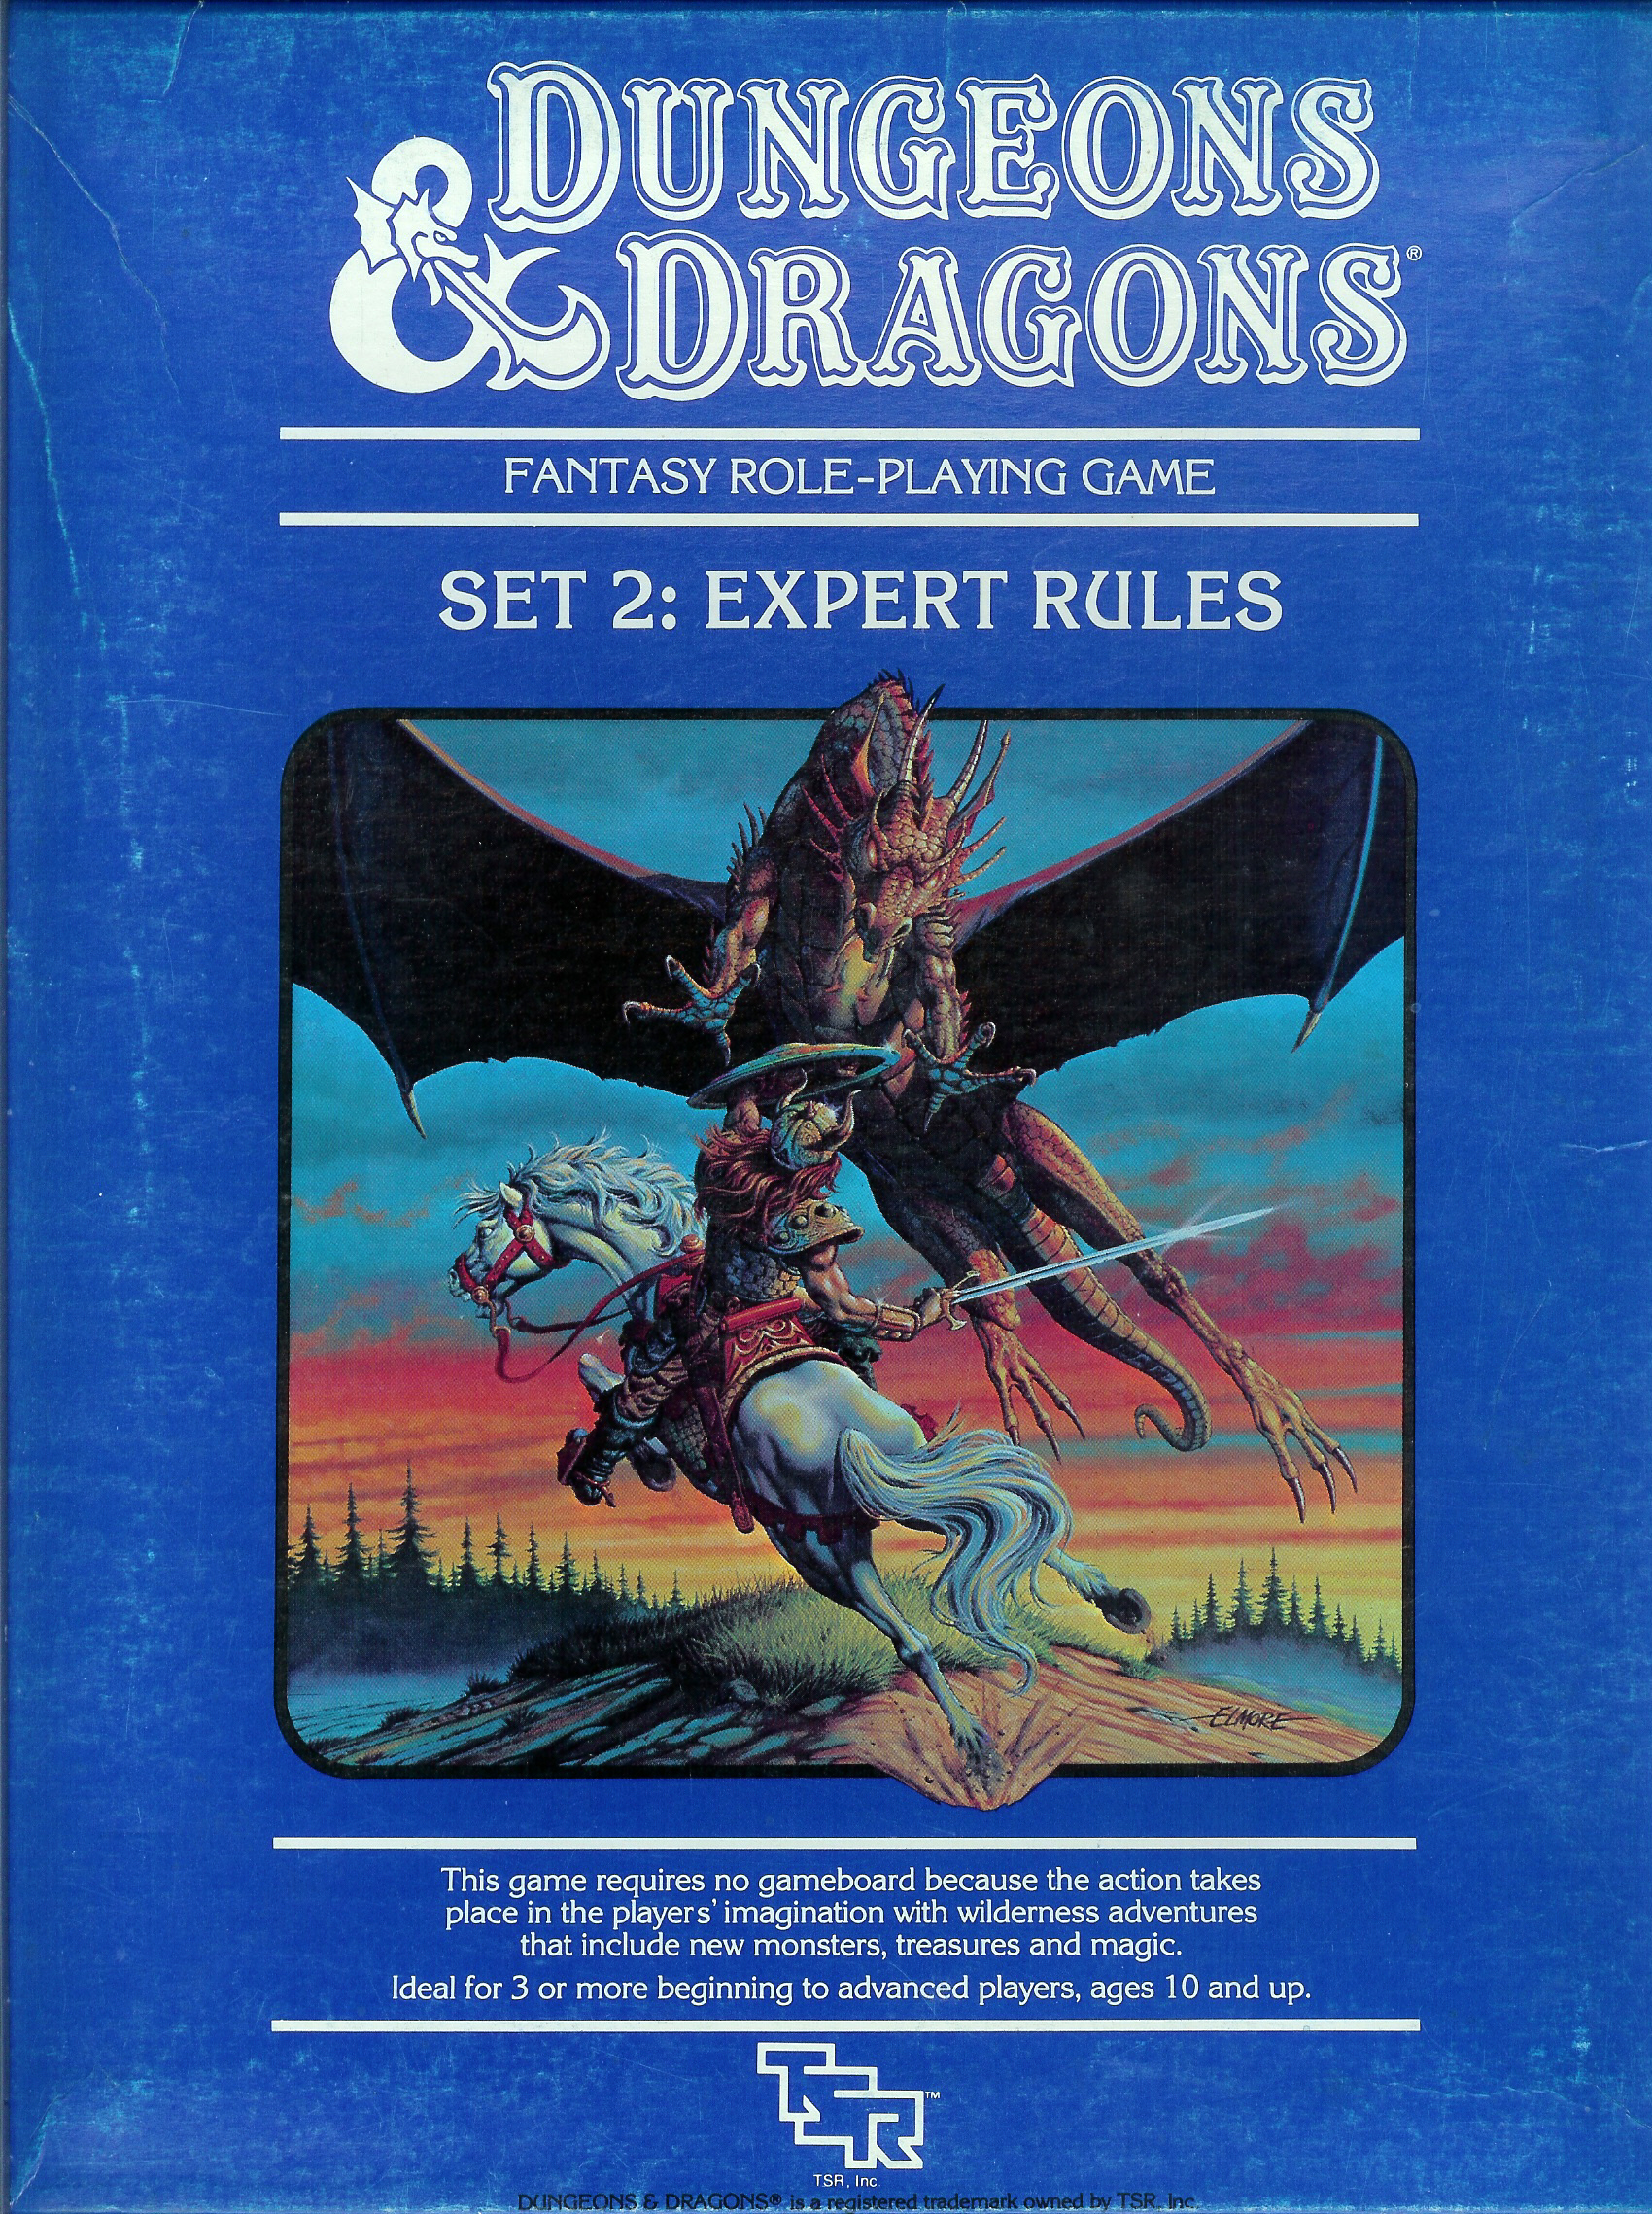 The Case For Mystara in 5e D&D @ RPG MUSINGS